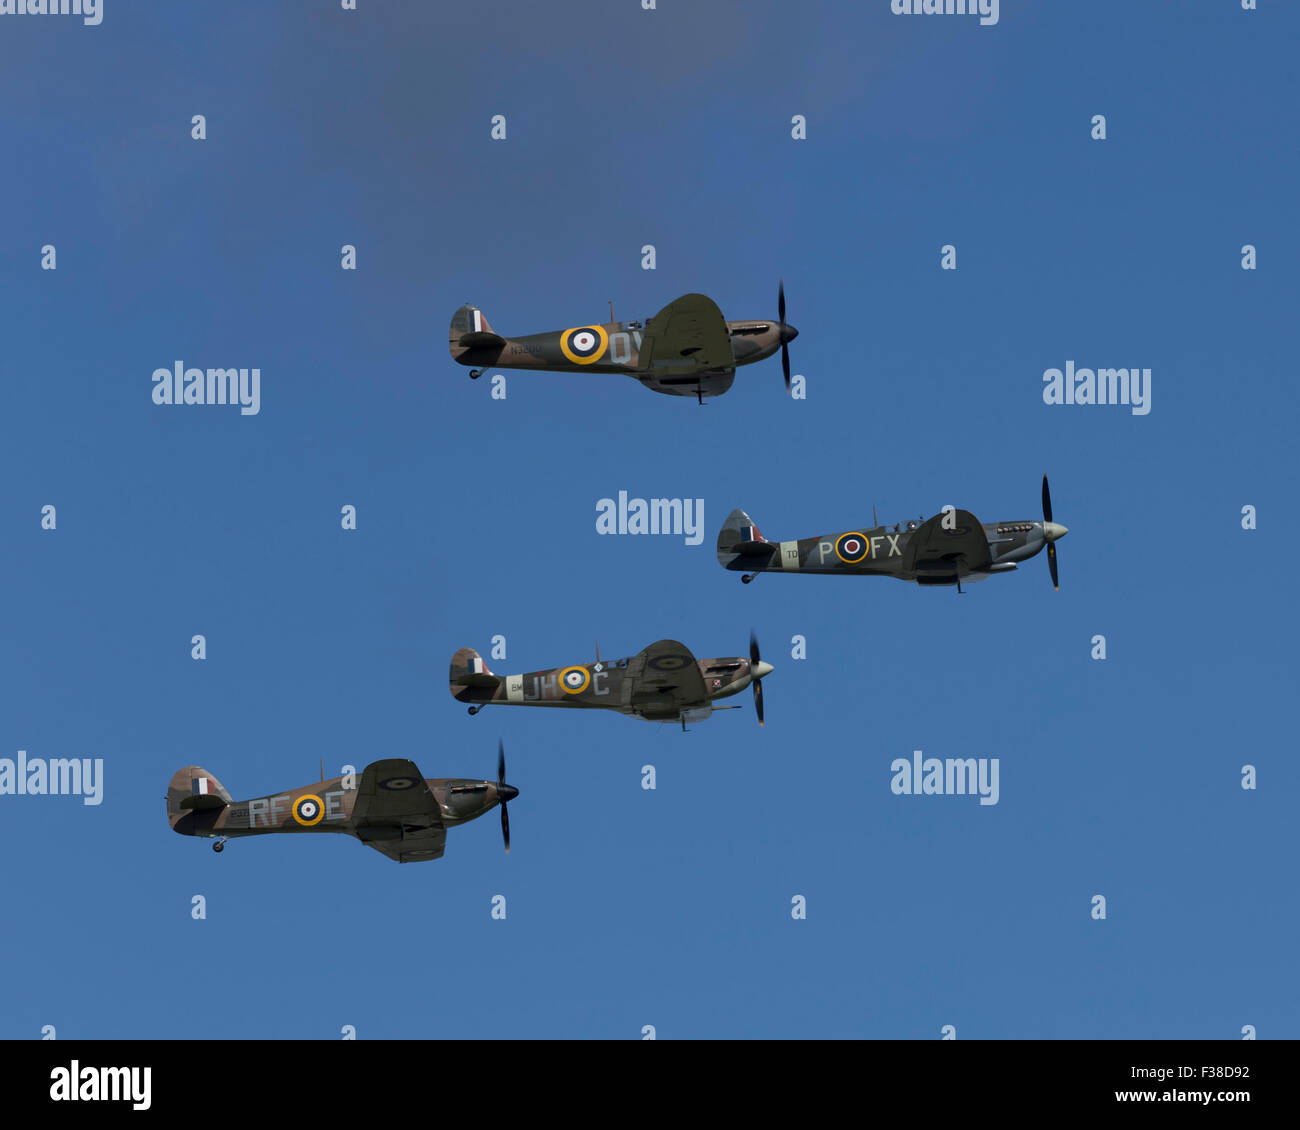 Three Spitfire and one Hurricane fighter aircraft at the Battle of Britain 75th Anniversary Flypast  at Goodwood - Stock Image